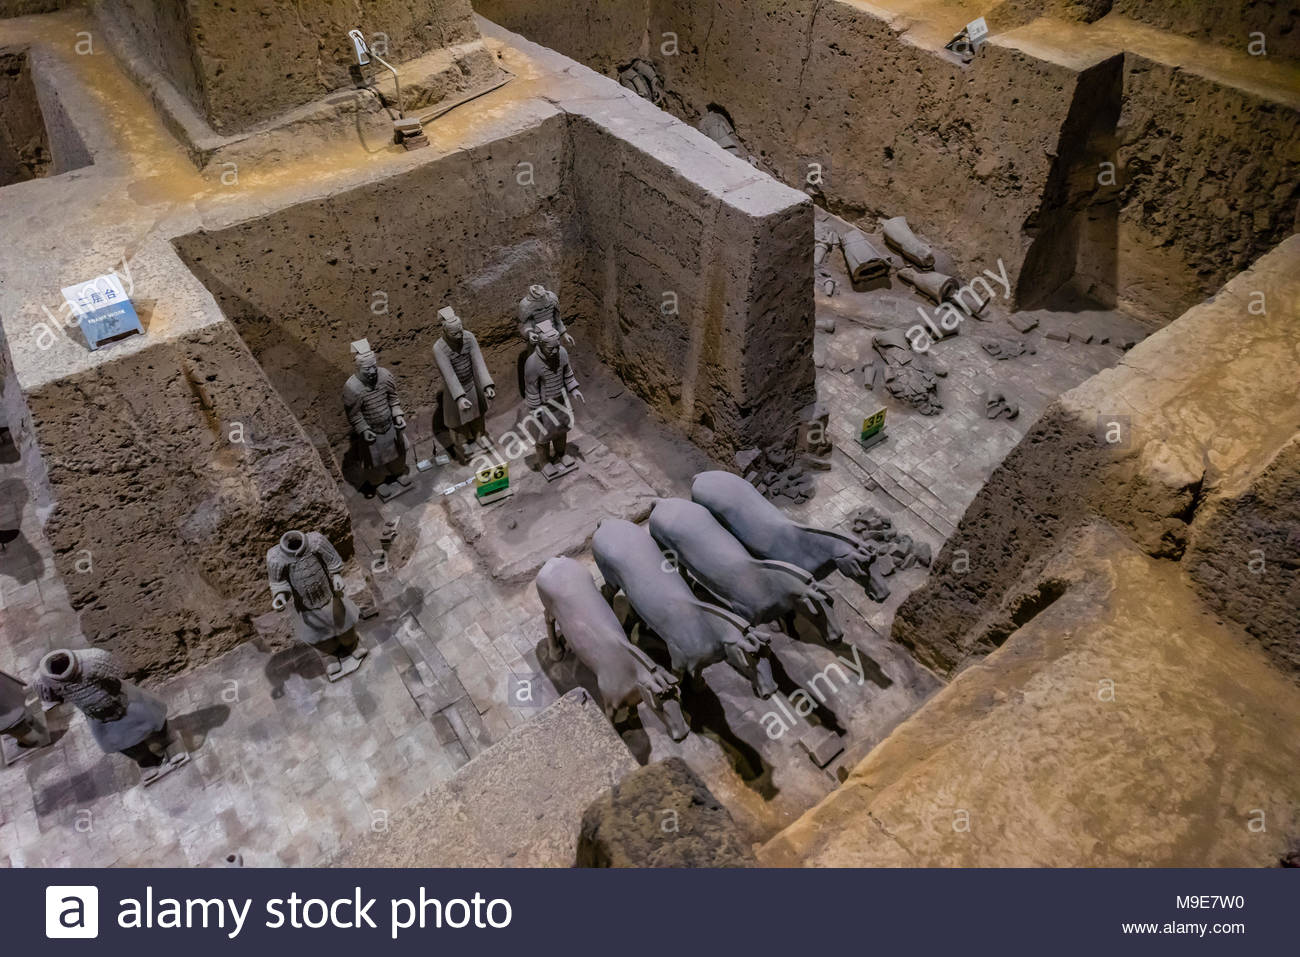 Vault 3 Excavation pits where work is still ongoing at the Terracotta Army of Emperor Qin Shi Huang, the first emperor of China. The Army was buried w Stock Photo